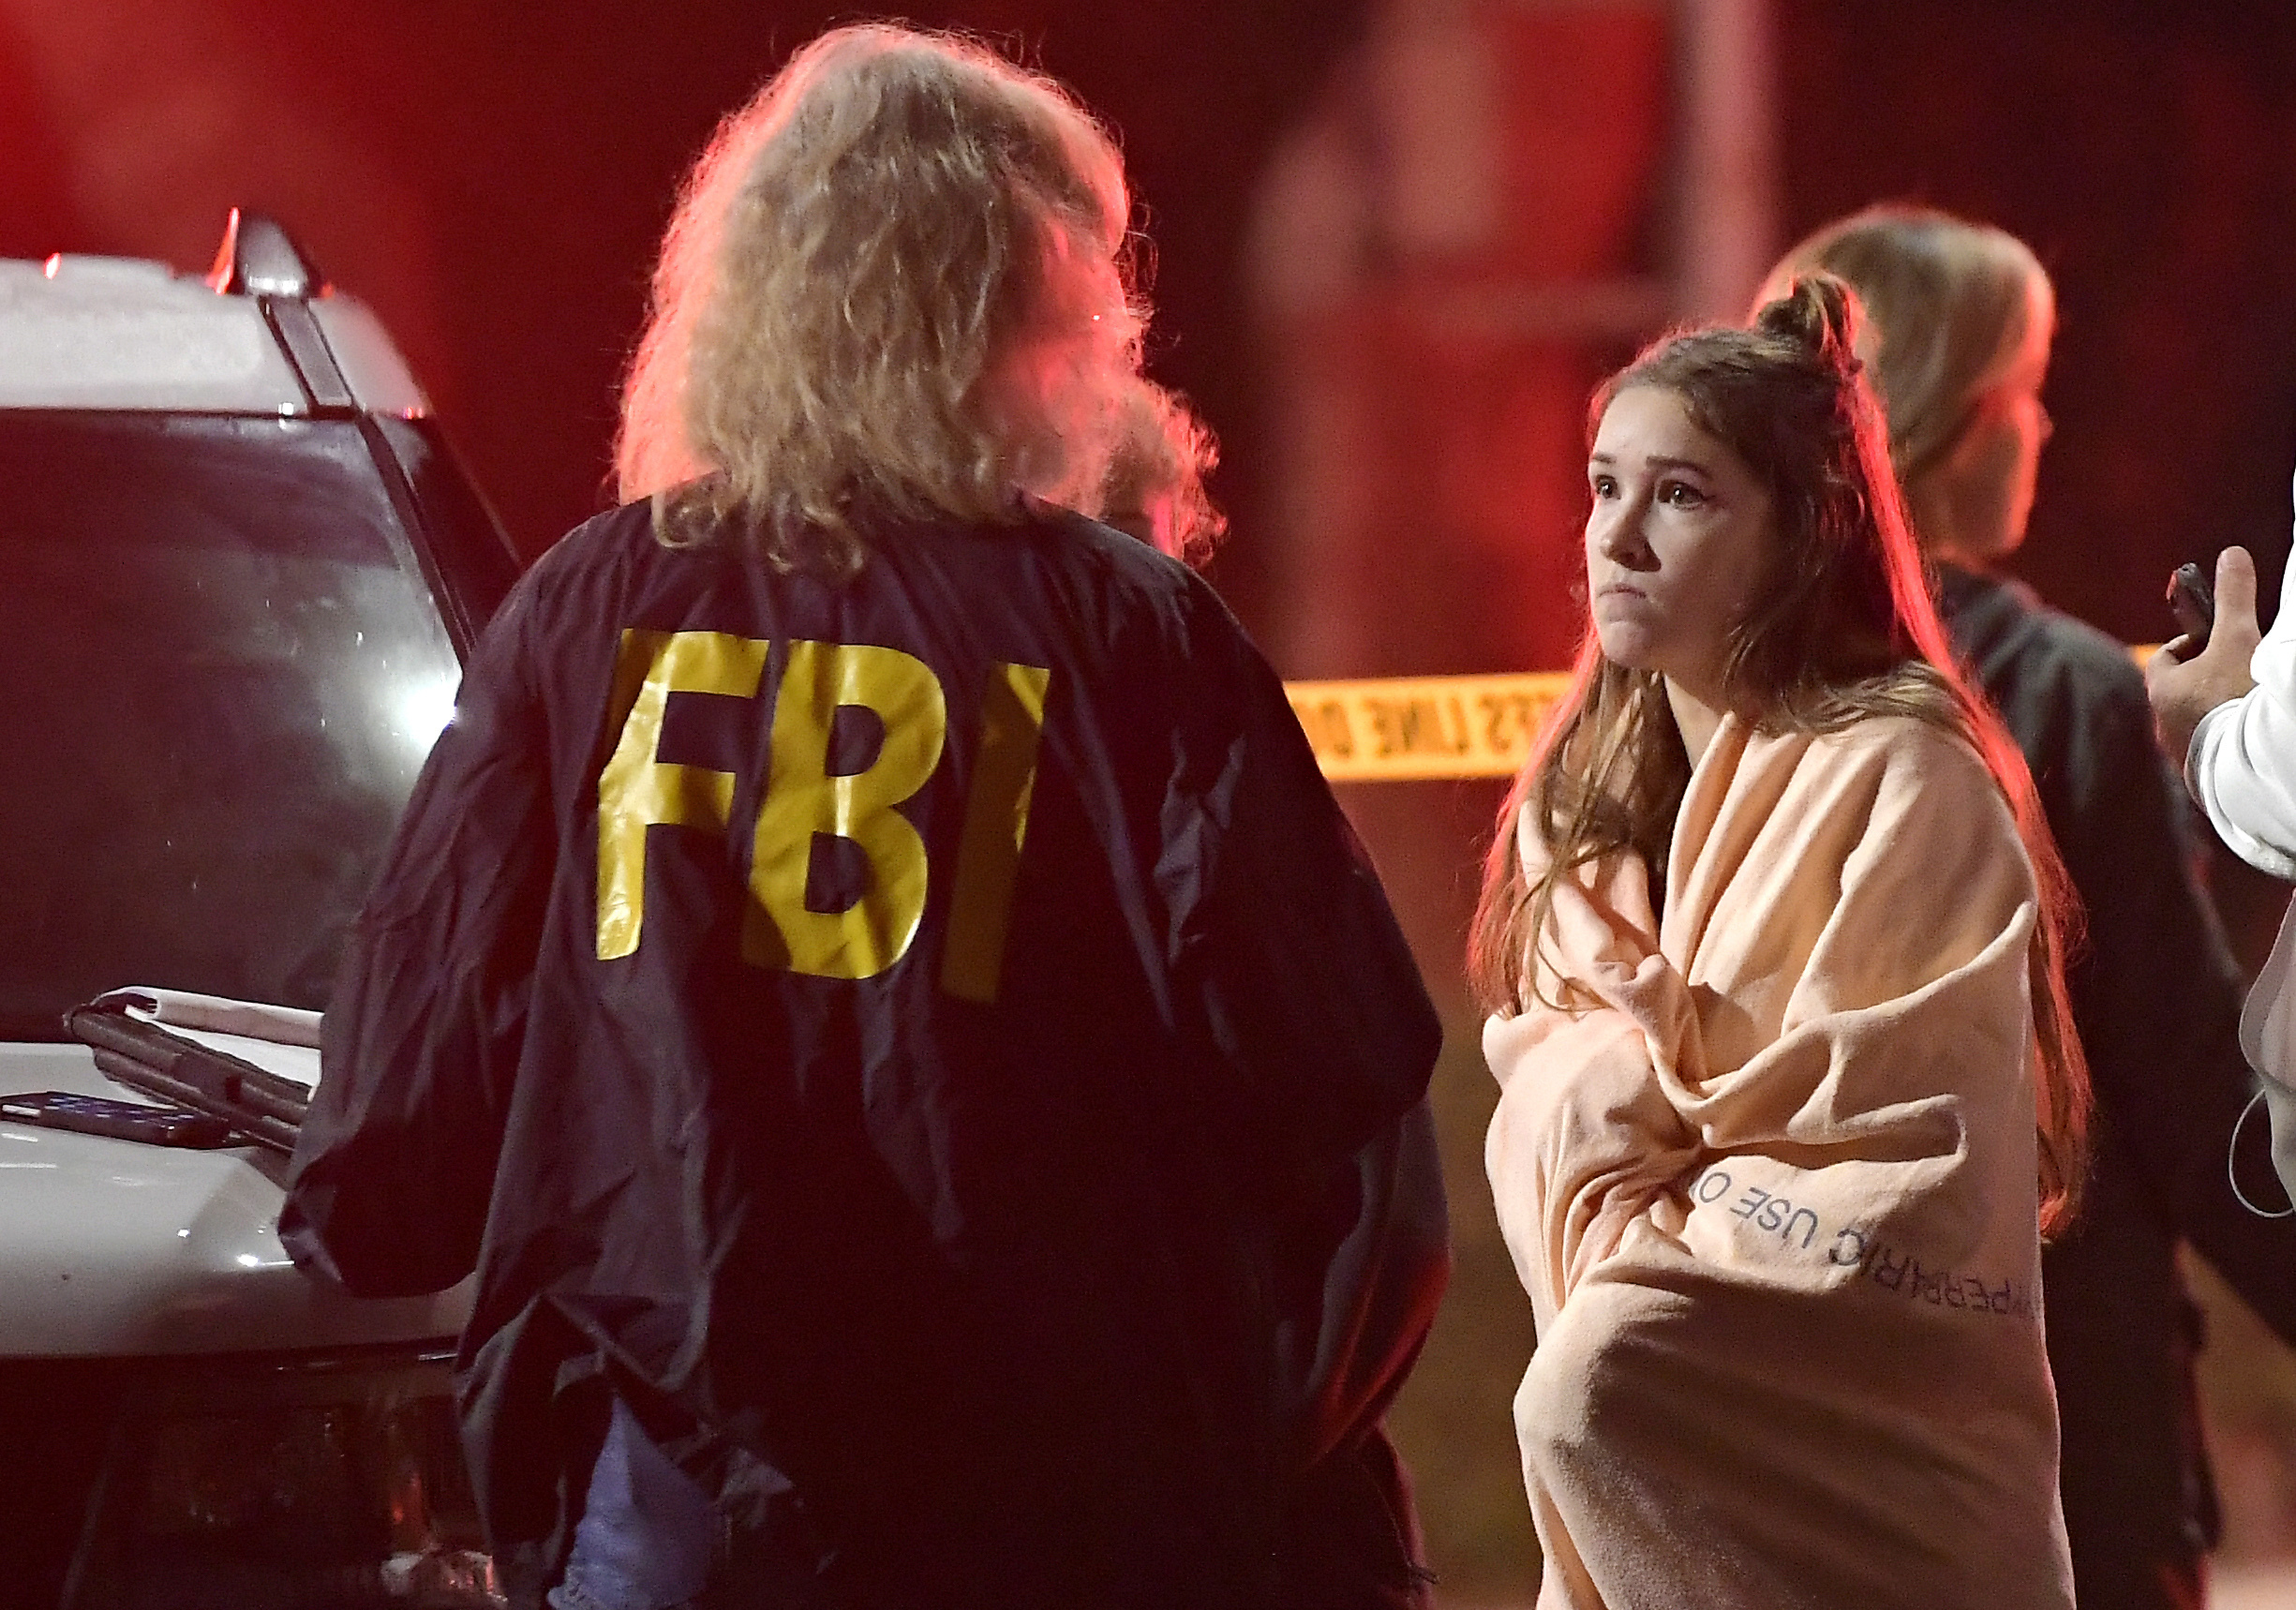 "<div class=""meta image-caption""><div class=""origin-logo origin-image none""><span>none</span></div><span class=""caption-text"">An FBI agent talks to a potential witness at a shooting at a California nightclub. (AP Photo/Mark J. Terrill)</span></div>"